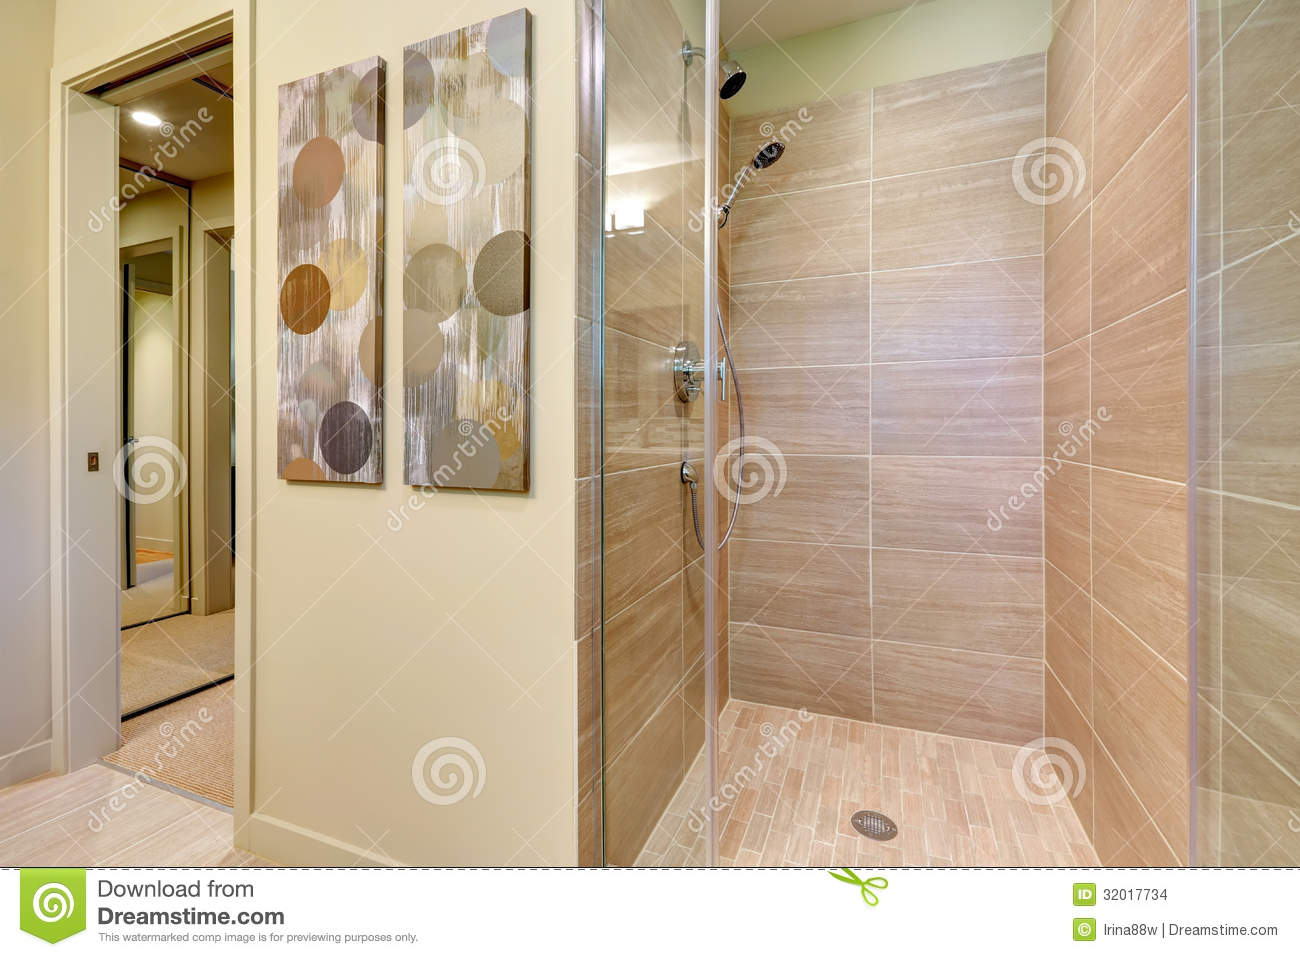 Modern bathroom showers - Modern Bathroom Showers Bathroom Shower With Glass Doors And Natural Color Tiles